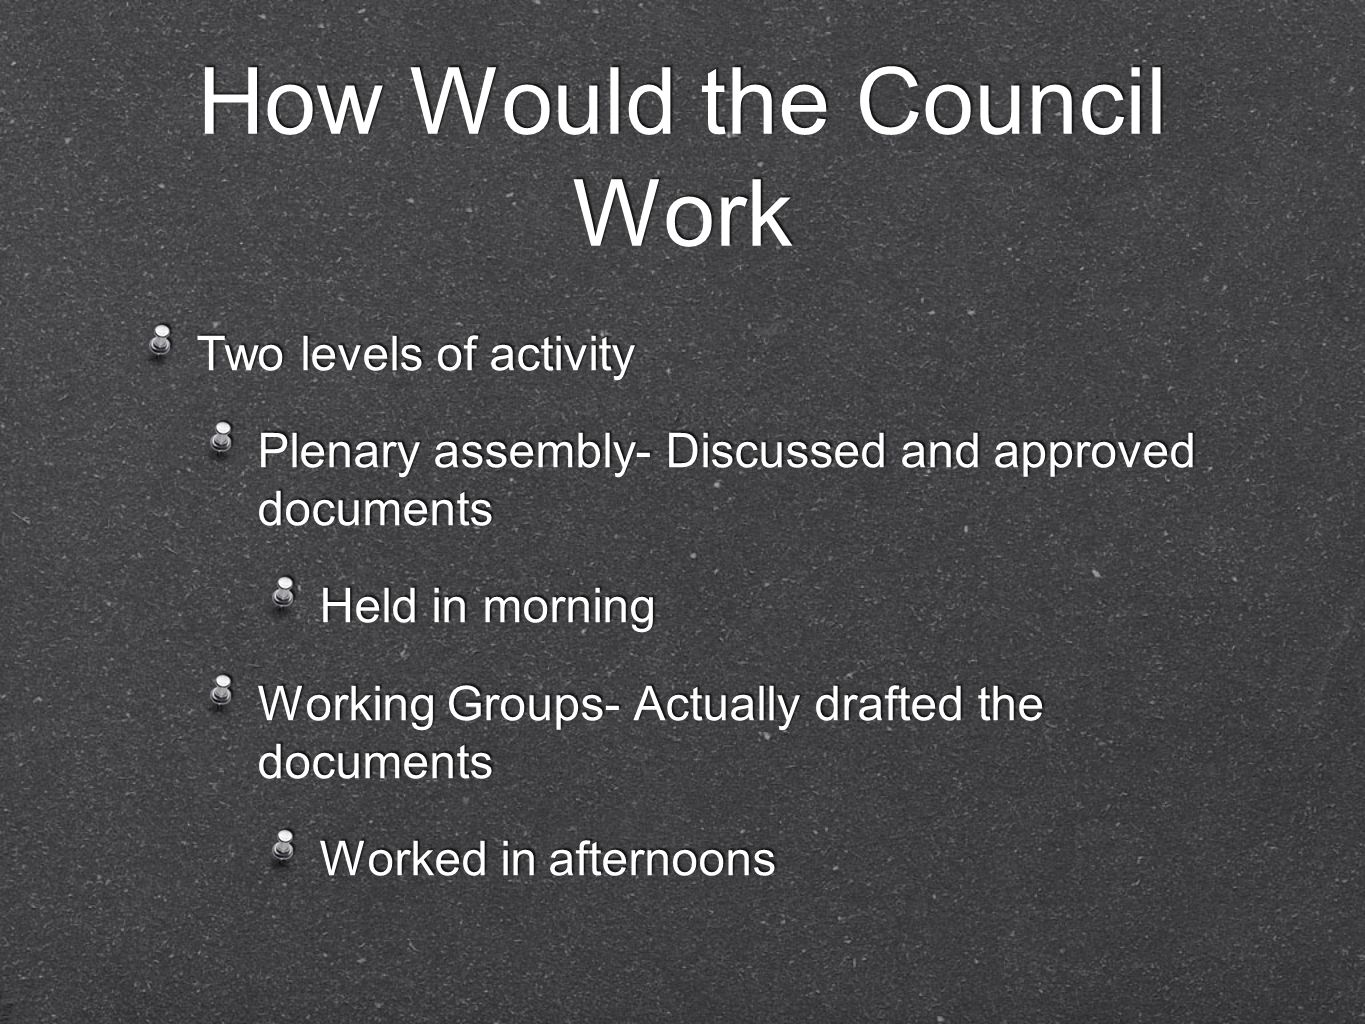 How Would the Council Work